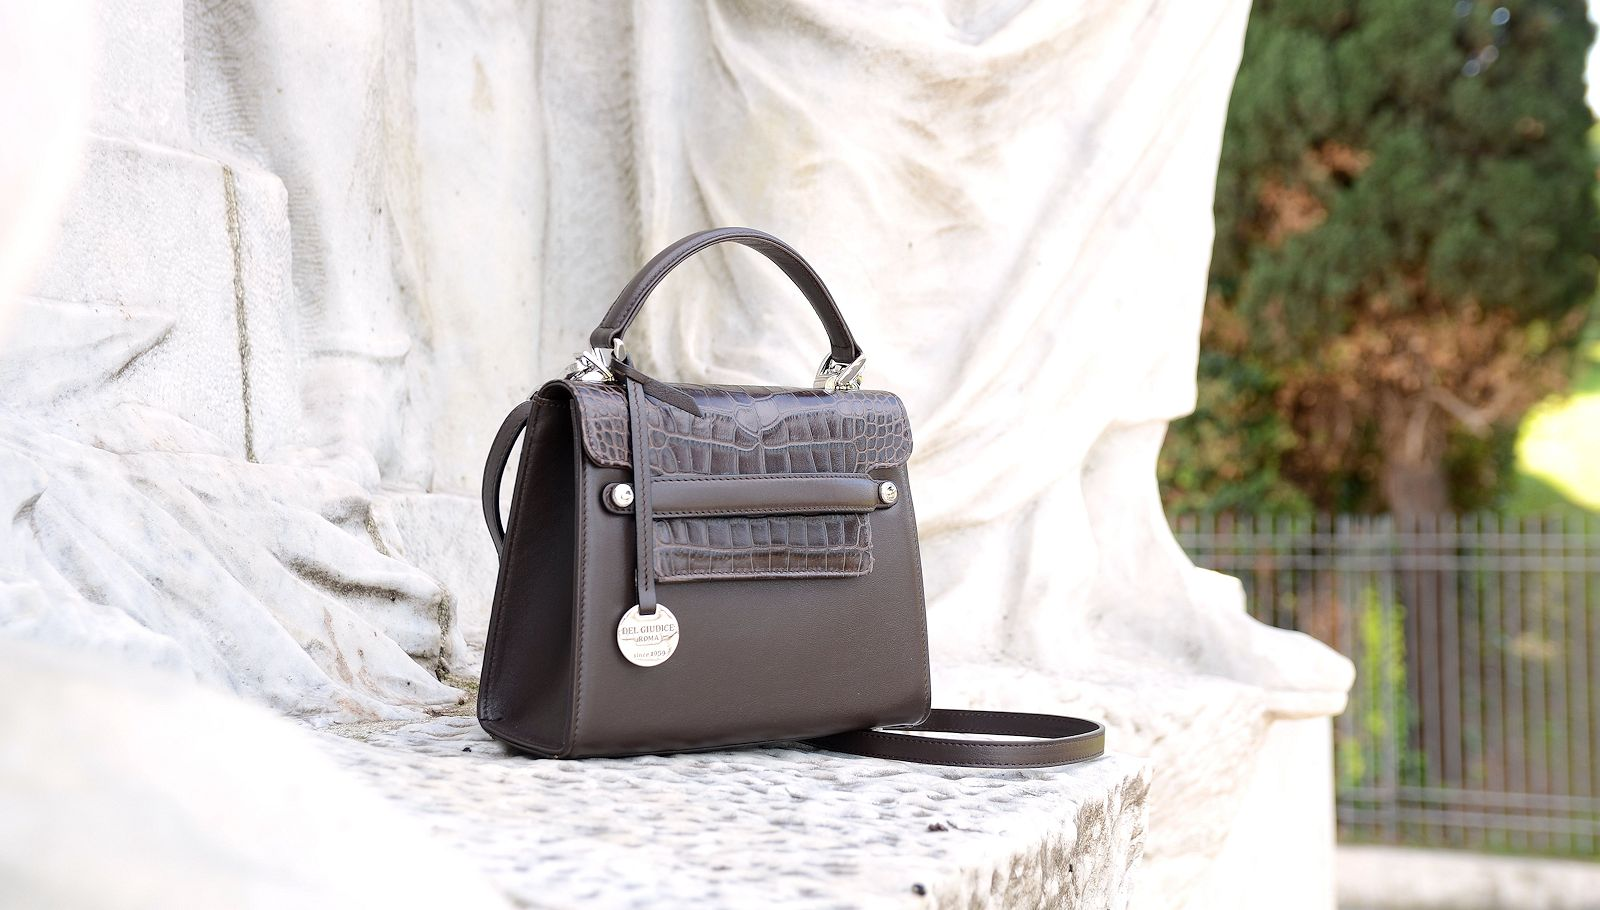 Italian leather handbag, Amelia